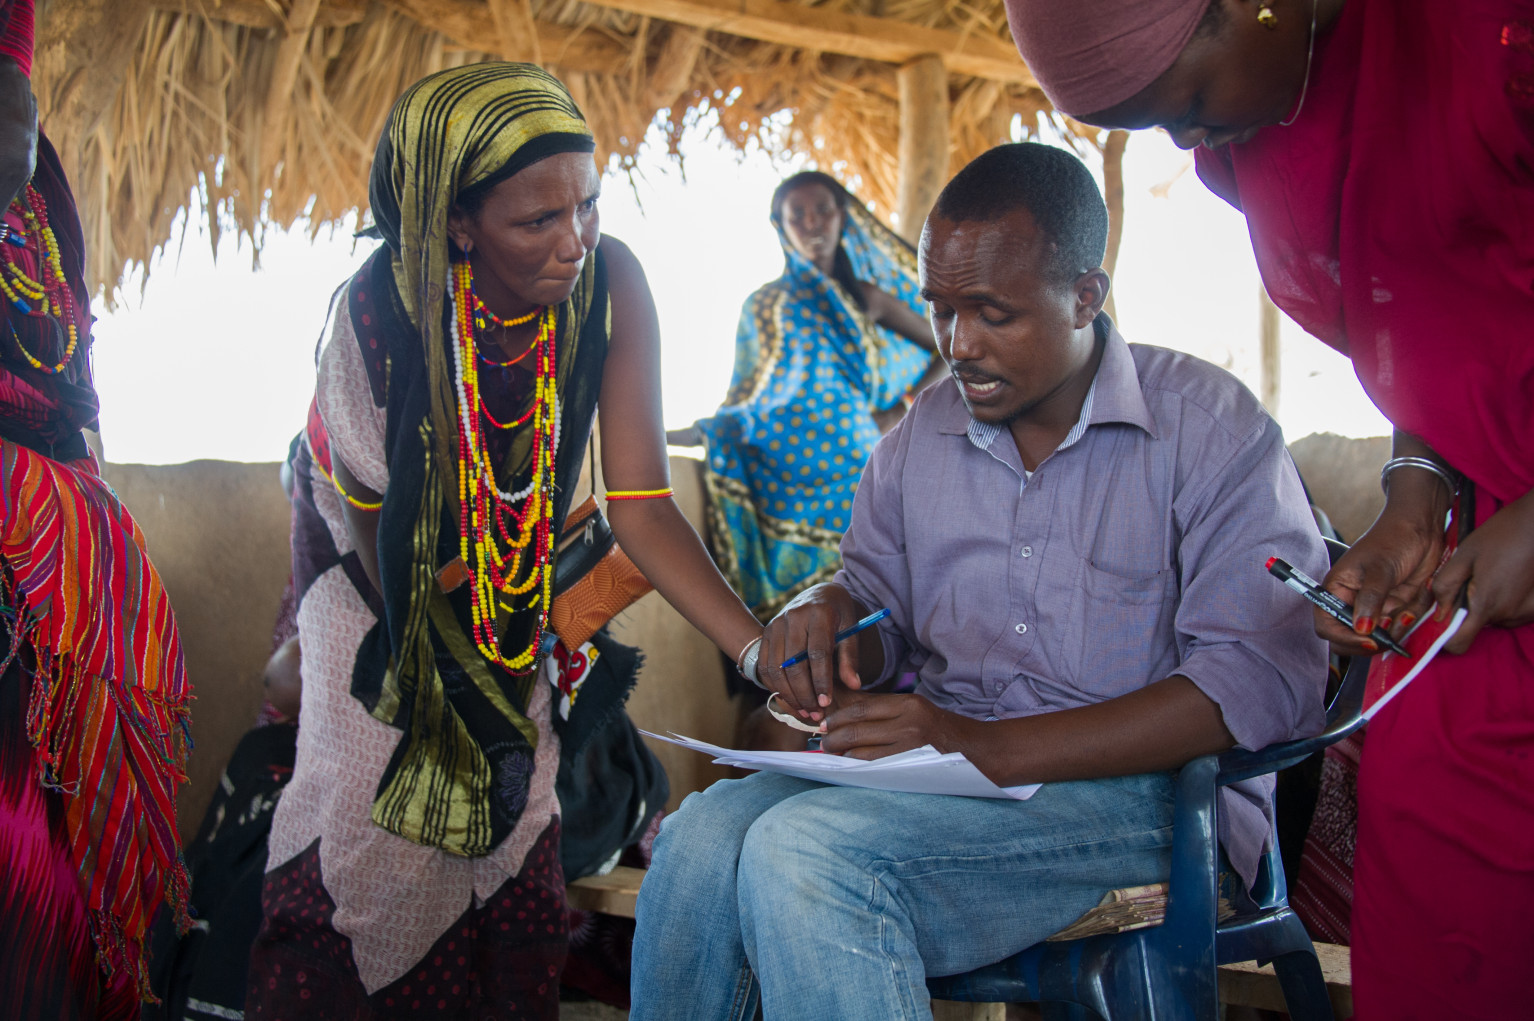 Dennis and Field Officer, Sabdio, help take down participants' information for their Savings Group. Each business group is given an additional grant during this training to help them increase their business stock.